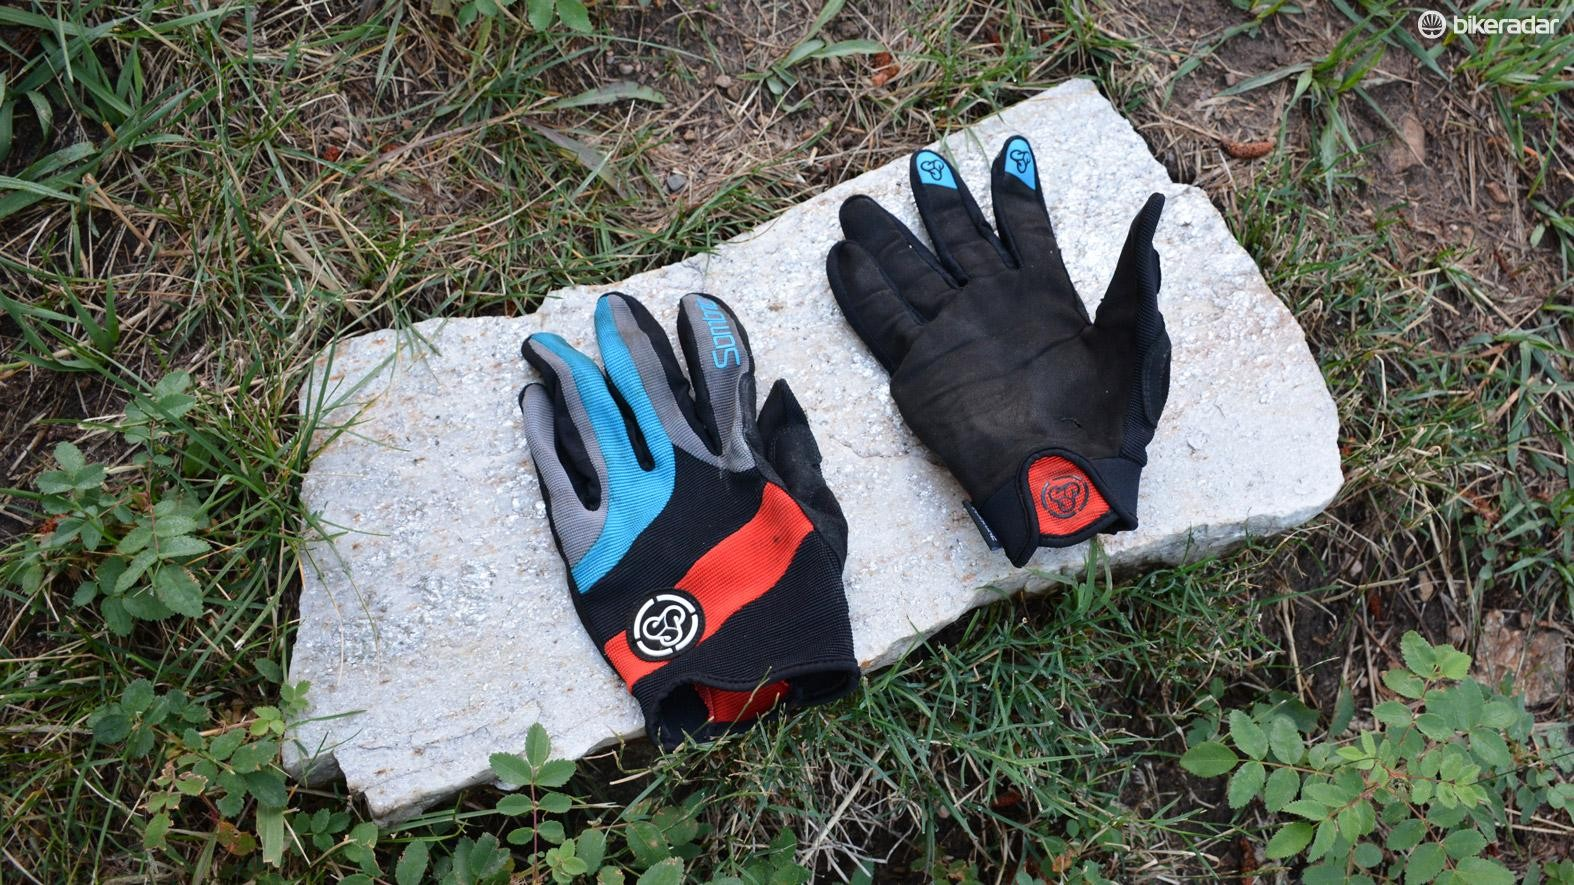 Sombrio's Prodigy gloves are built for mountain bikers, from dirt jumpers to trail rippers